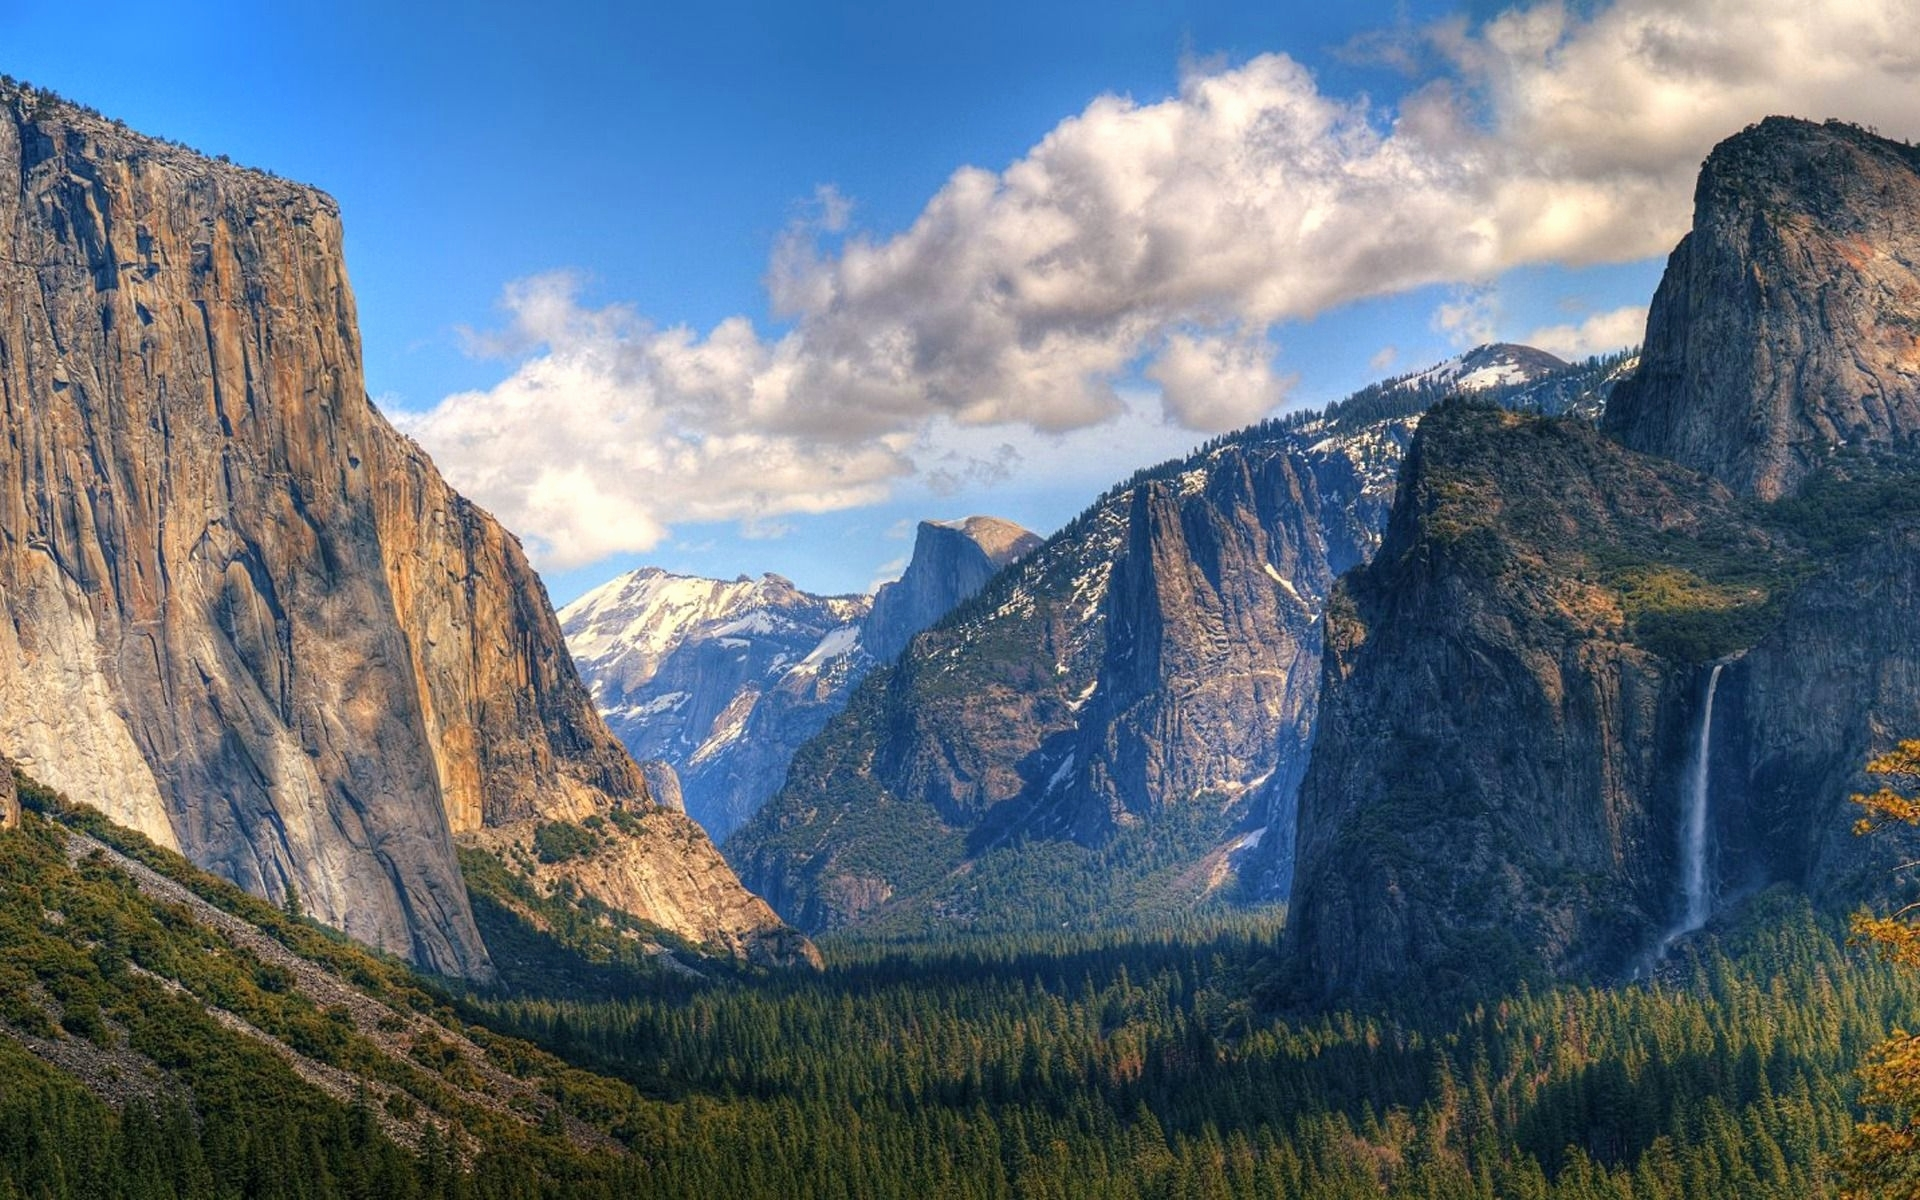 yosemite national park wallpaper fresh yosemite national park